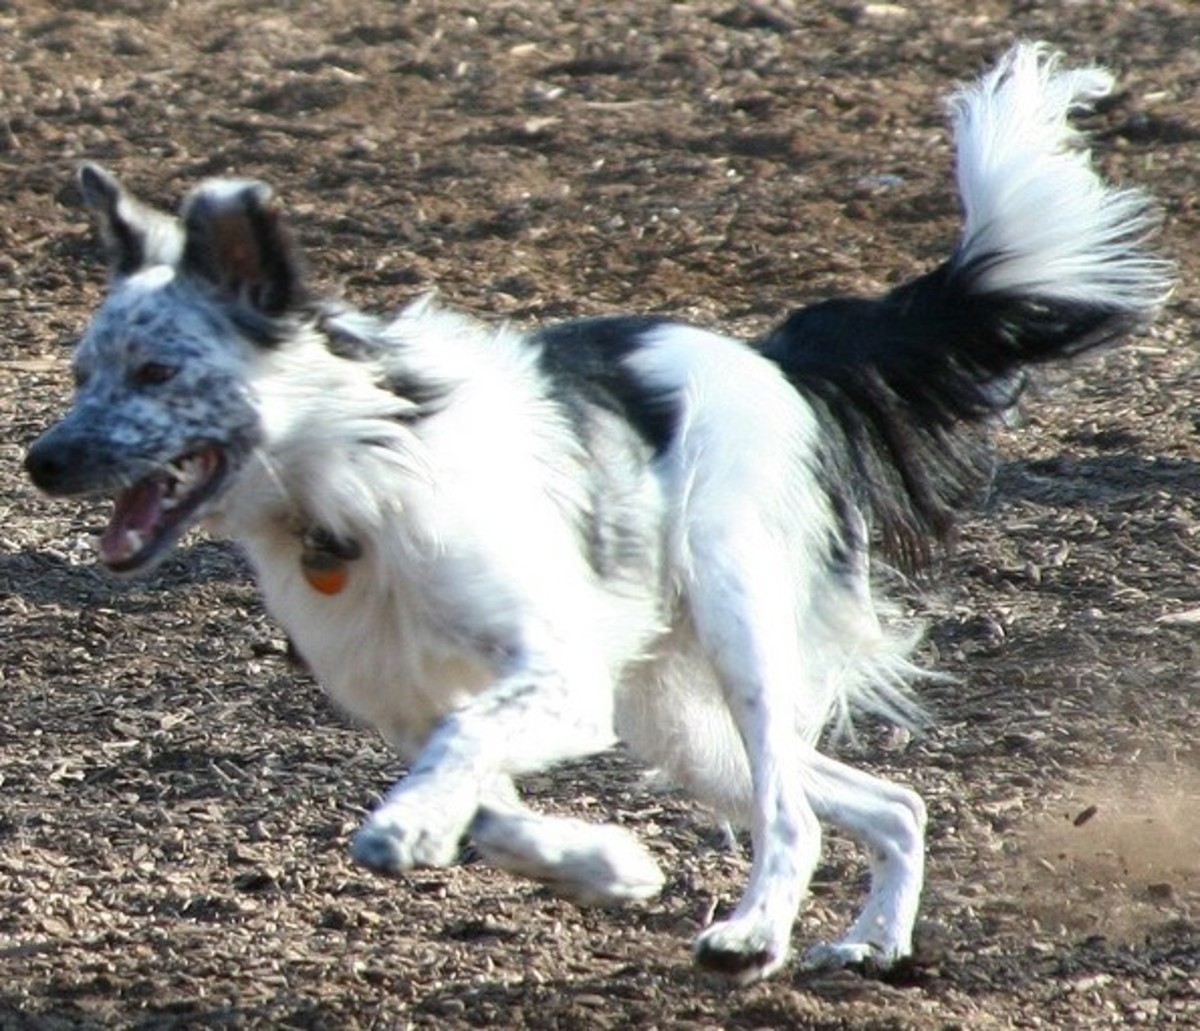 Border Collies have been developed for performance, and sometimes dogs look different than the norm.